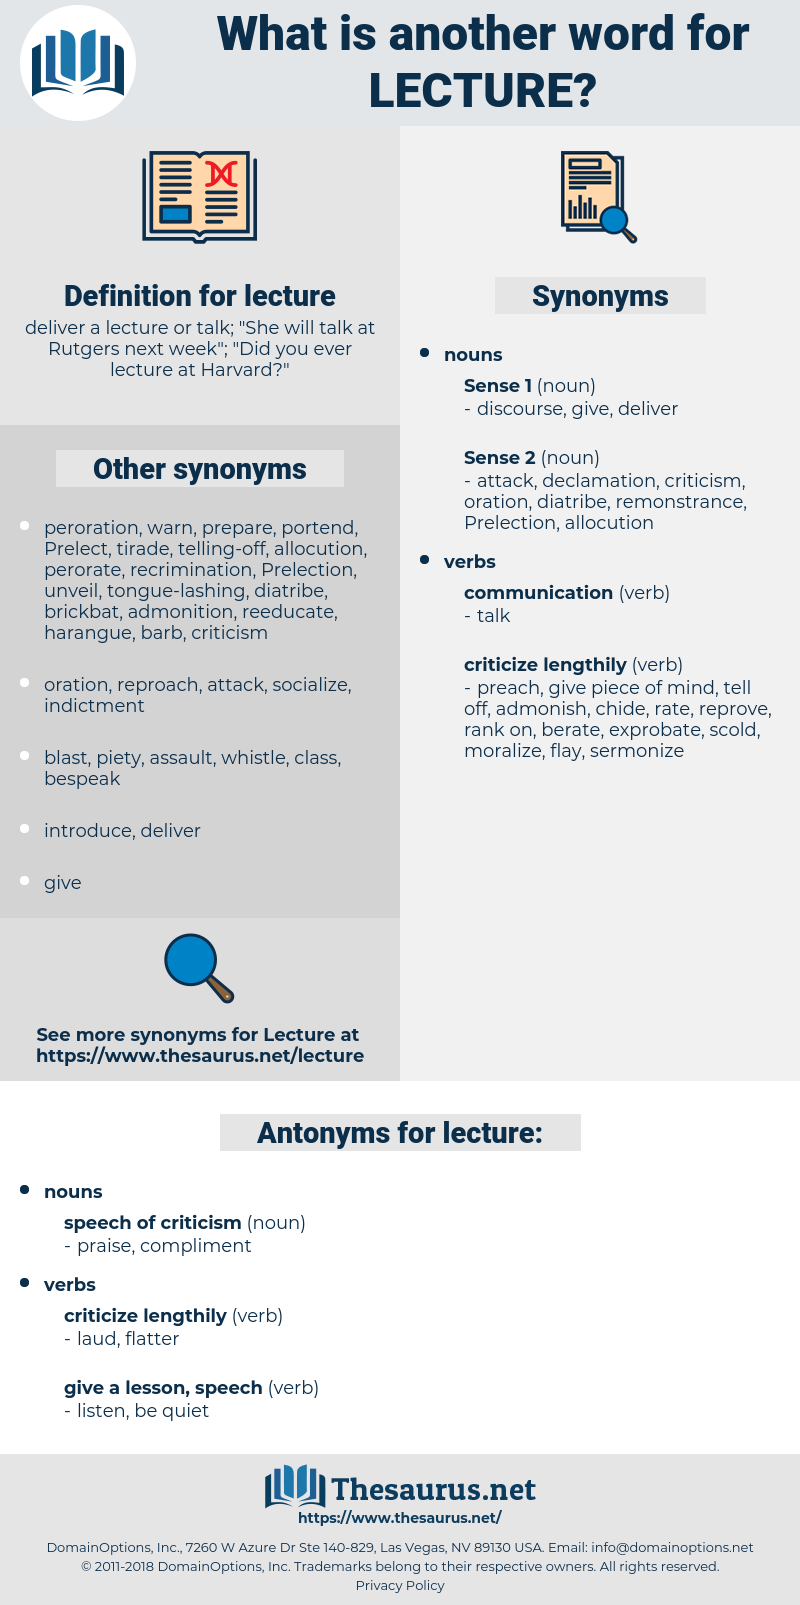 lecture, synonym lecture, another word for lecture, words like lecture, thesaurus lecture